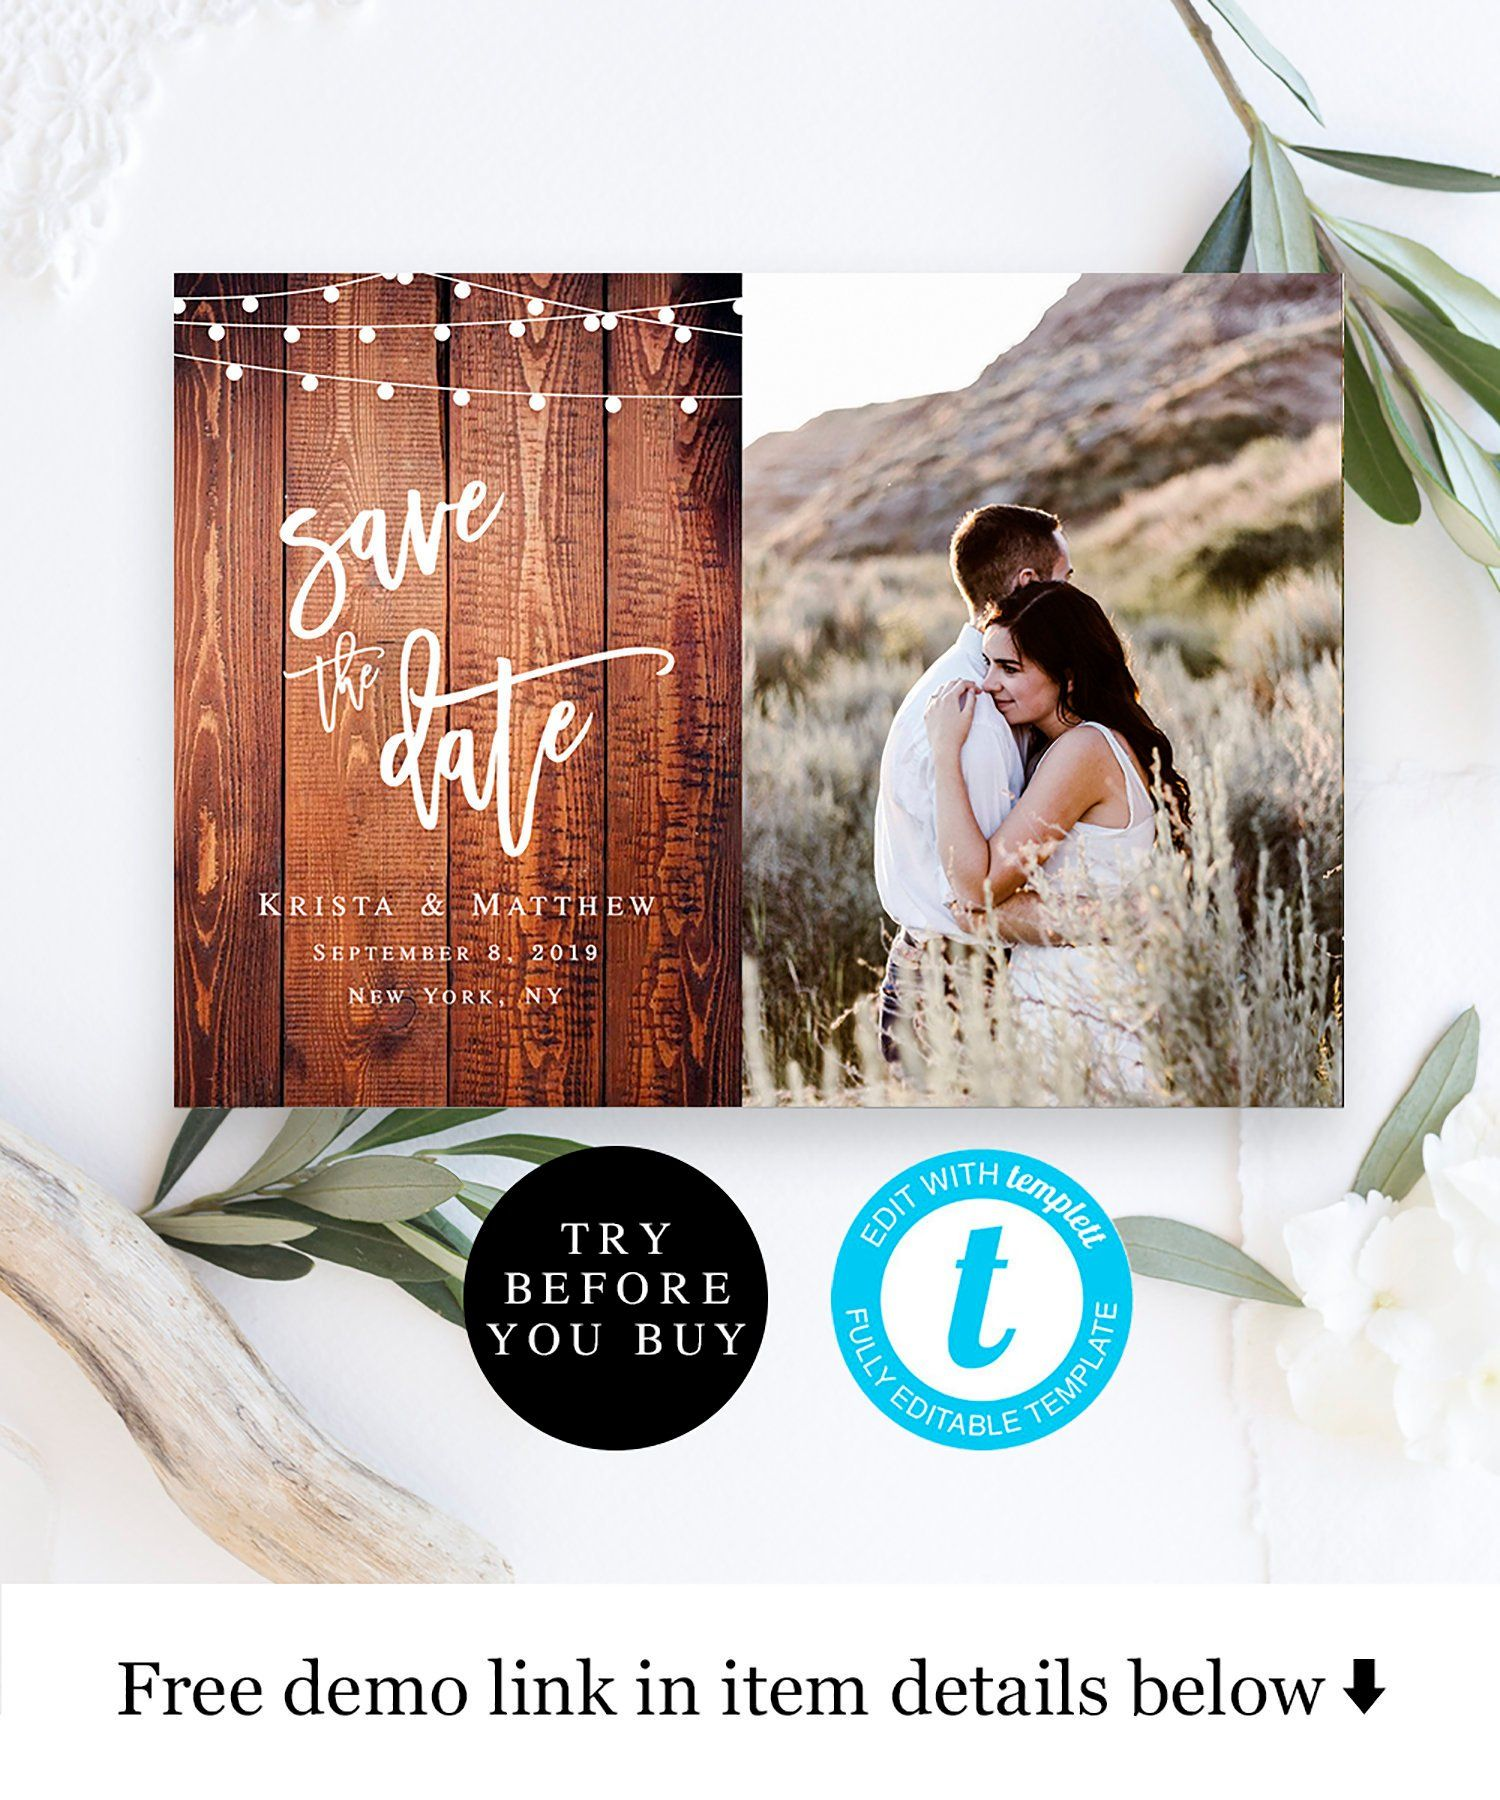 Save The Date Photo Template Wood Background Save The Date Etsy Save The Date Templates Save The Date Photos Save The Date Invitations Save the date email template